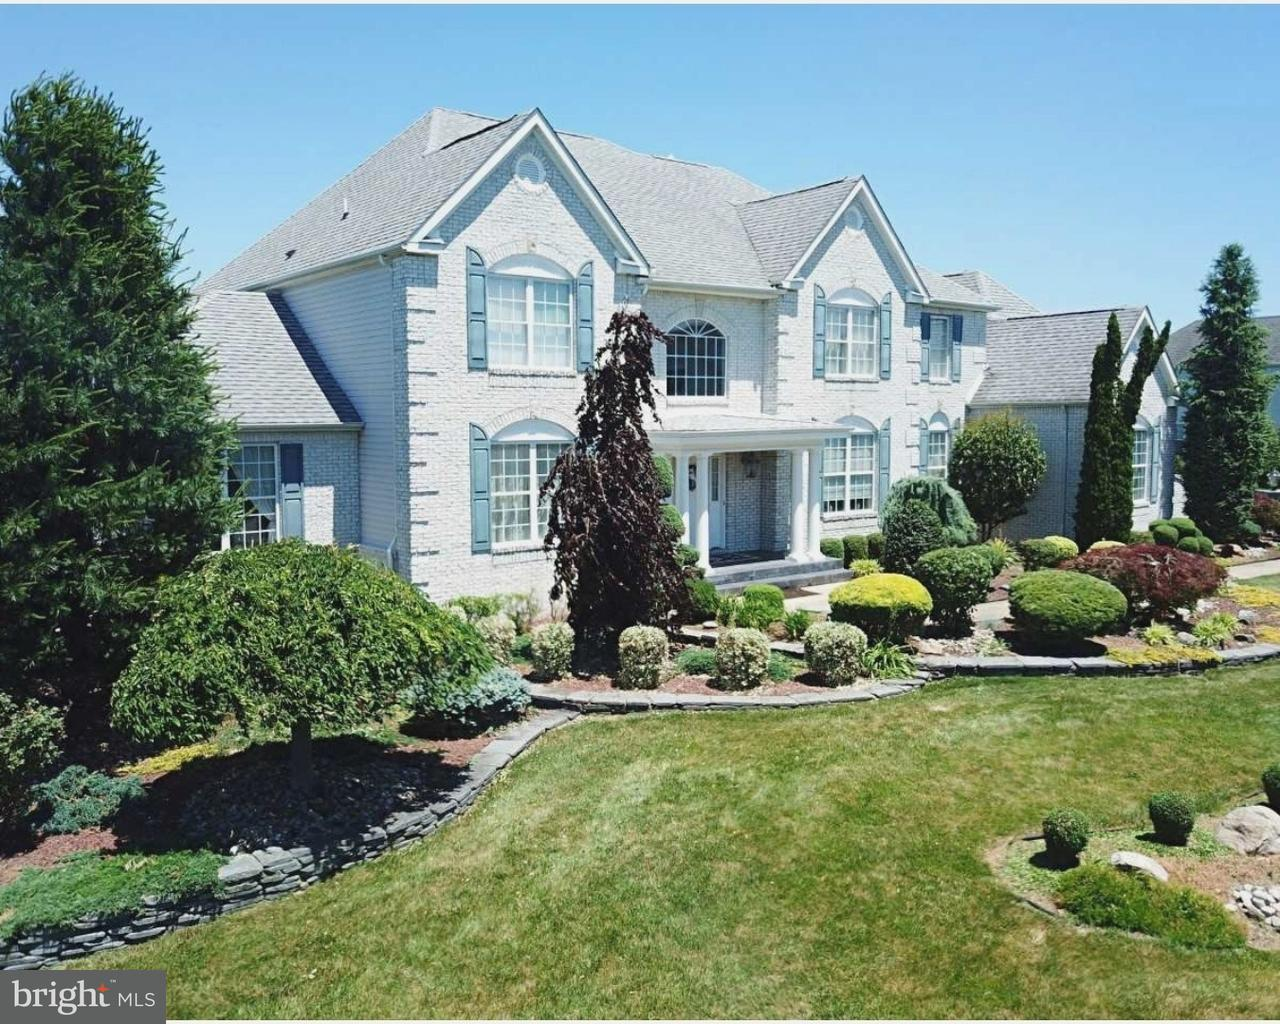 Single Family Home for Sale at 16 SHERWOOD Lane Columbus, New Jersey 08022 United States